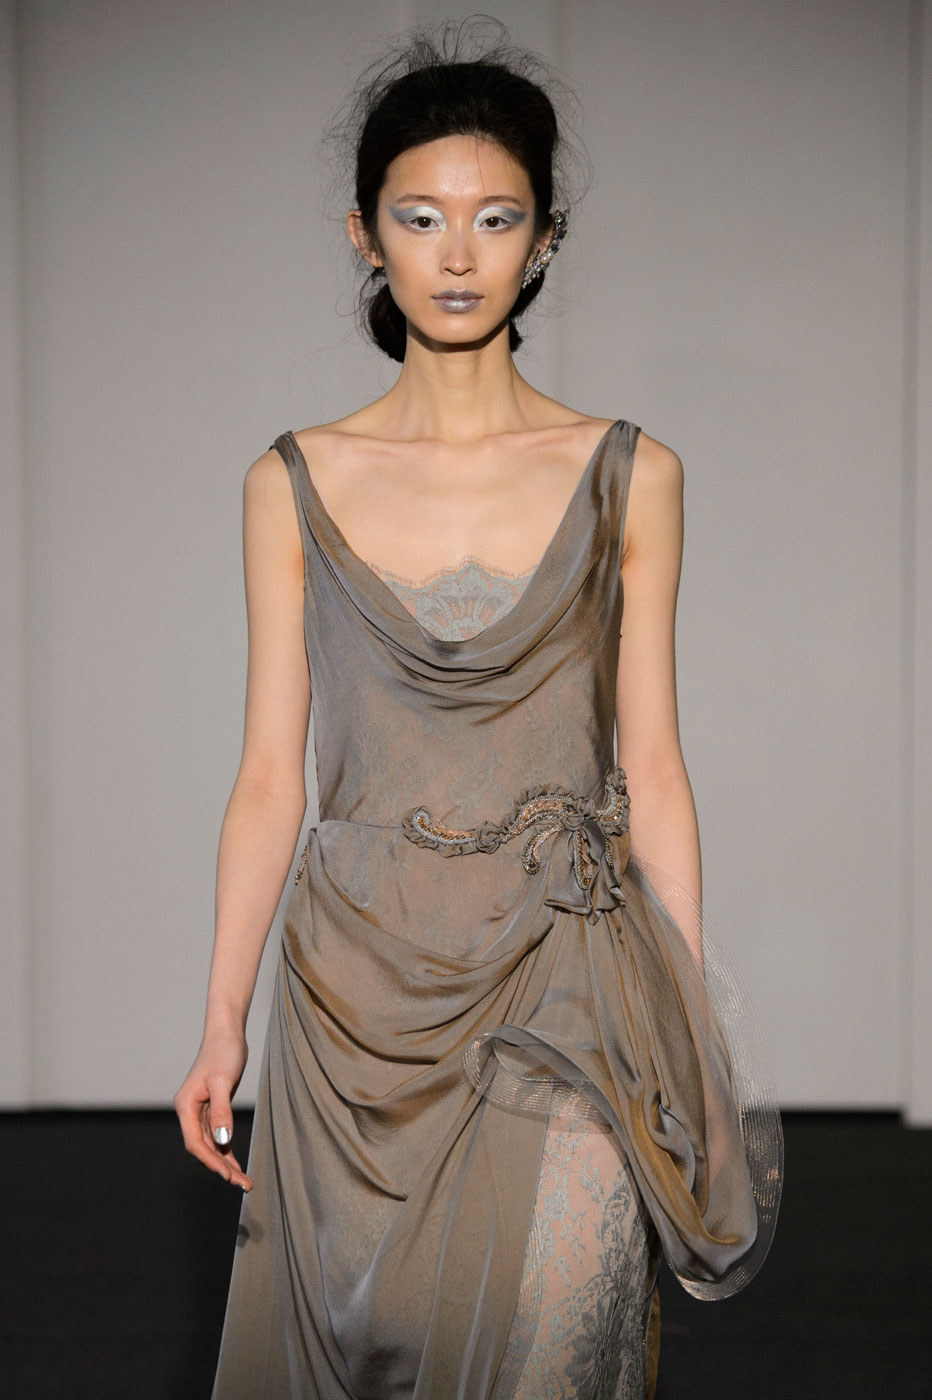 Busardi-fashion-runway-show-haute-couture-paris-spring-2015-the-impression-23